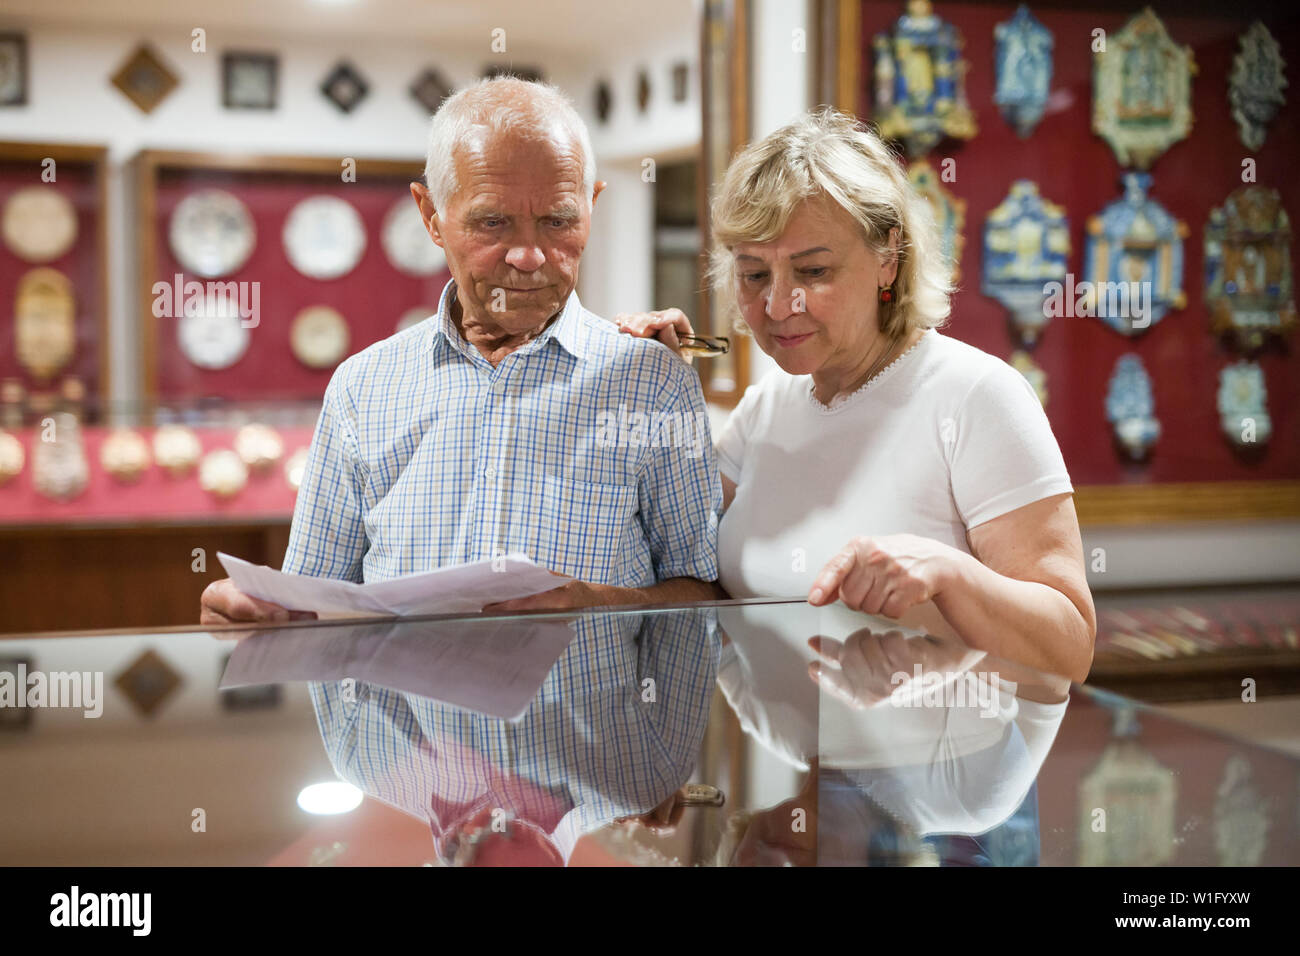 Mature male and female looking at exhibits In glass stands in historical museum - Stock Image